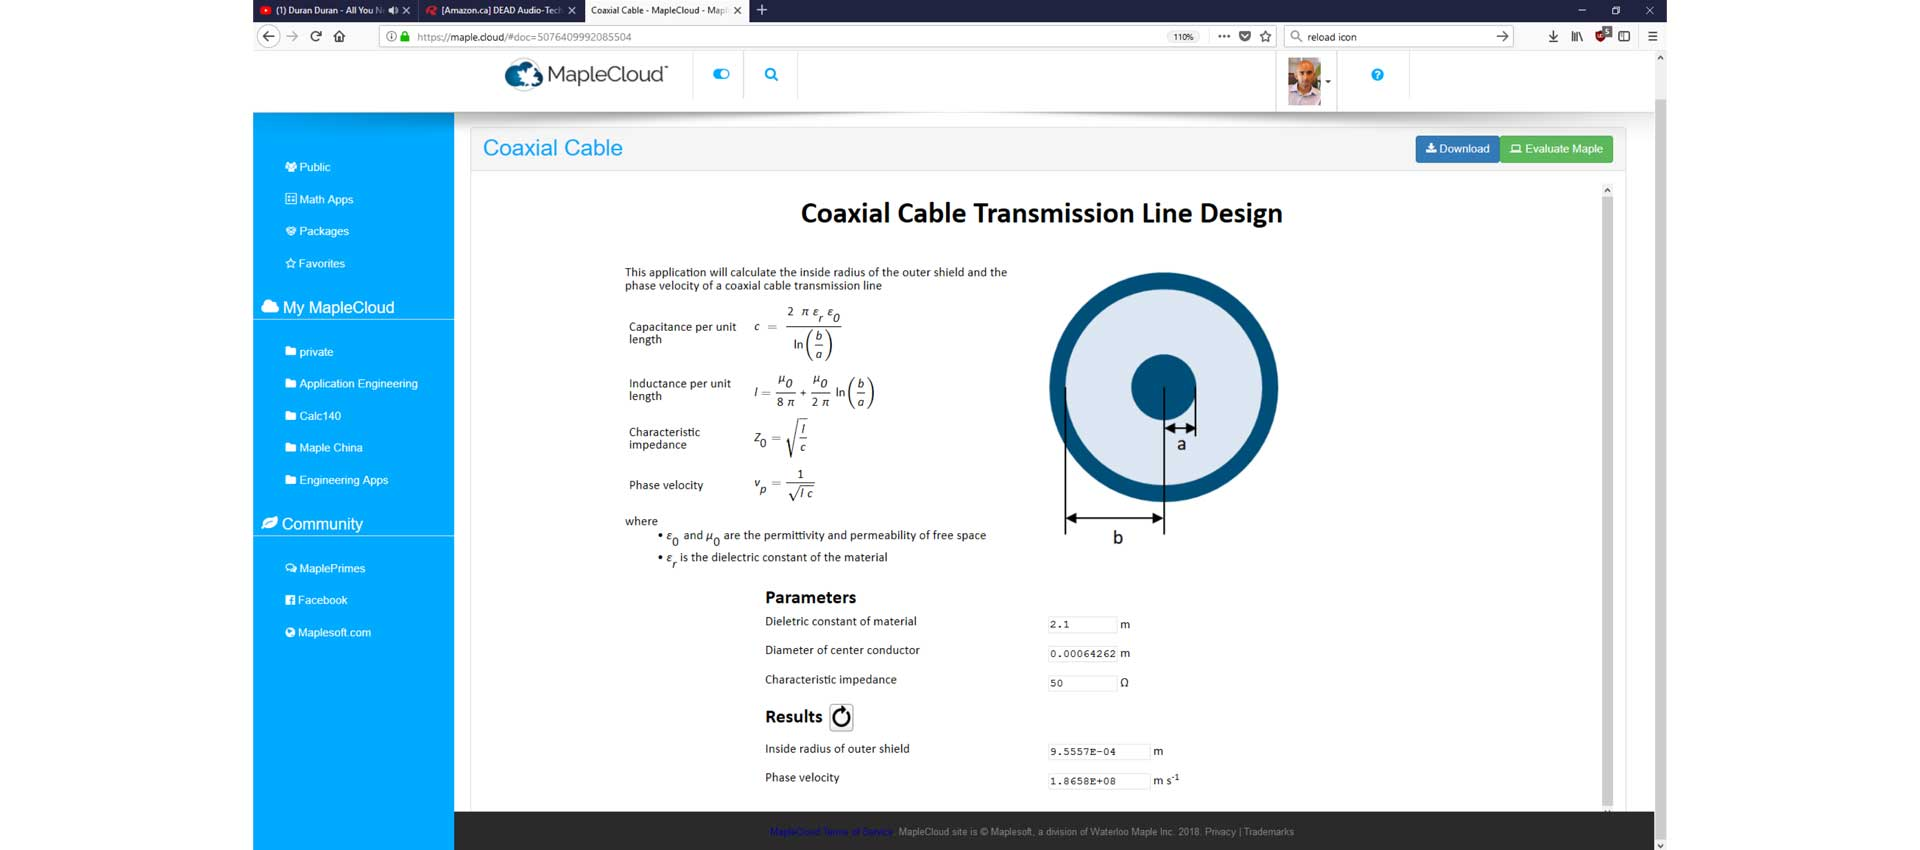 Web-Based coaxial cable transmission line design